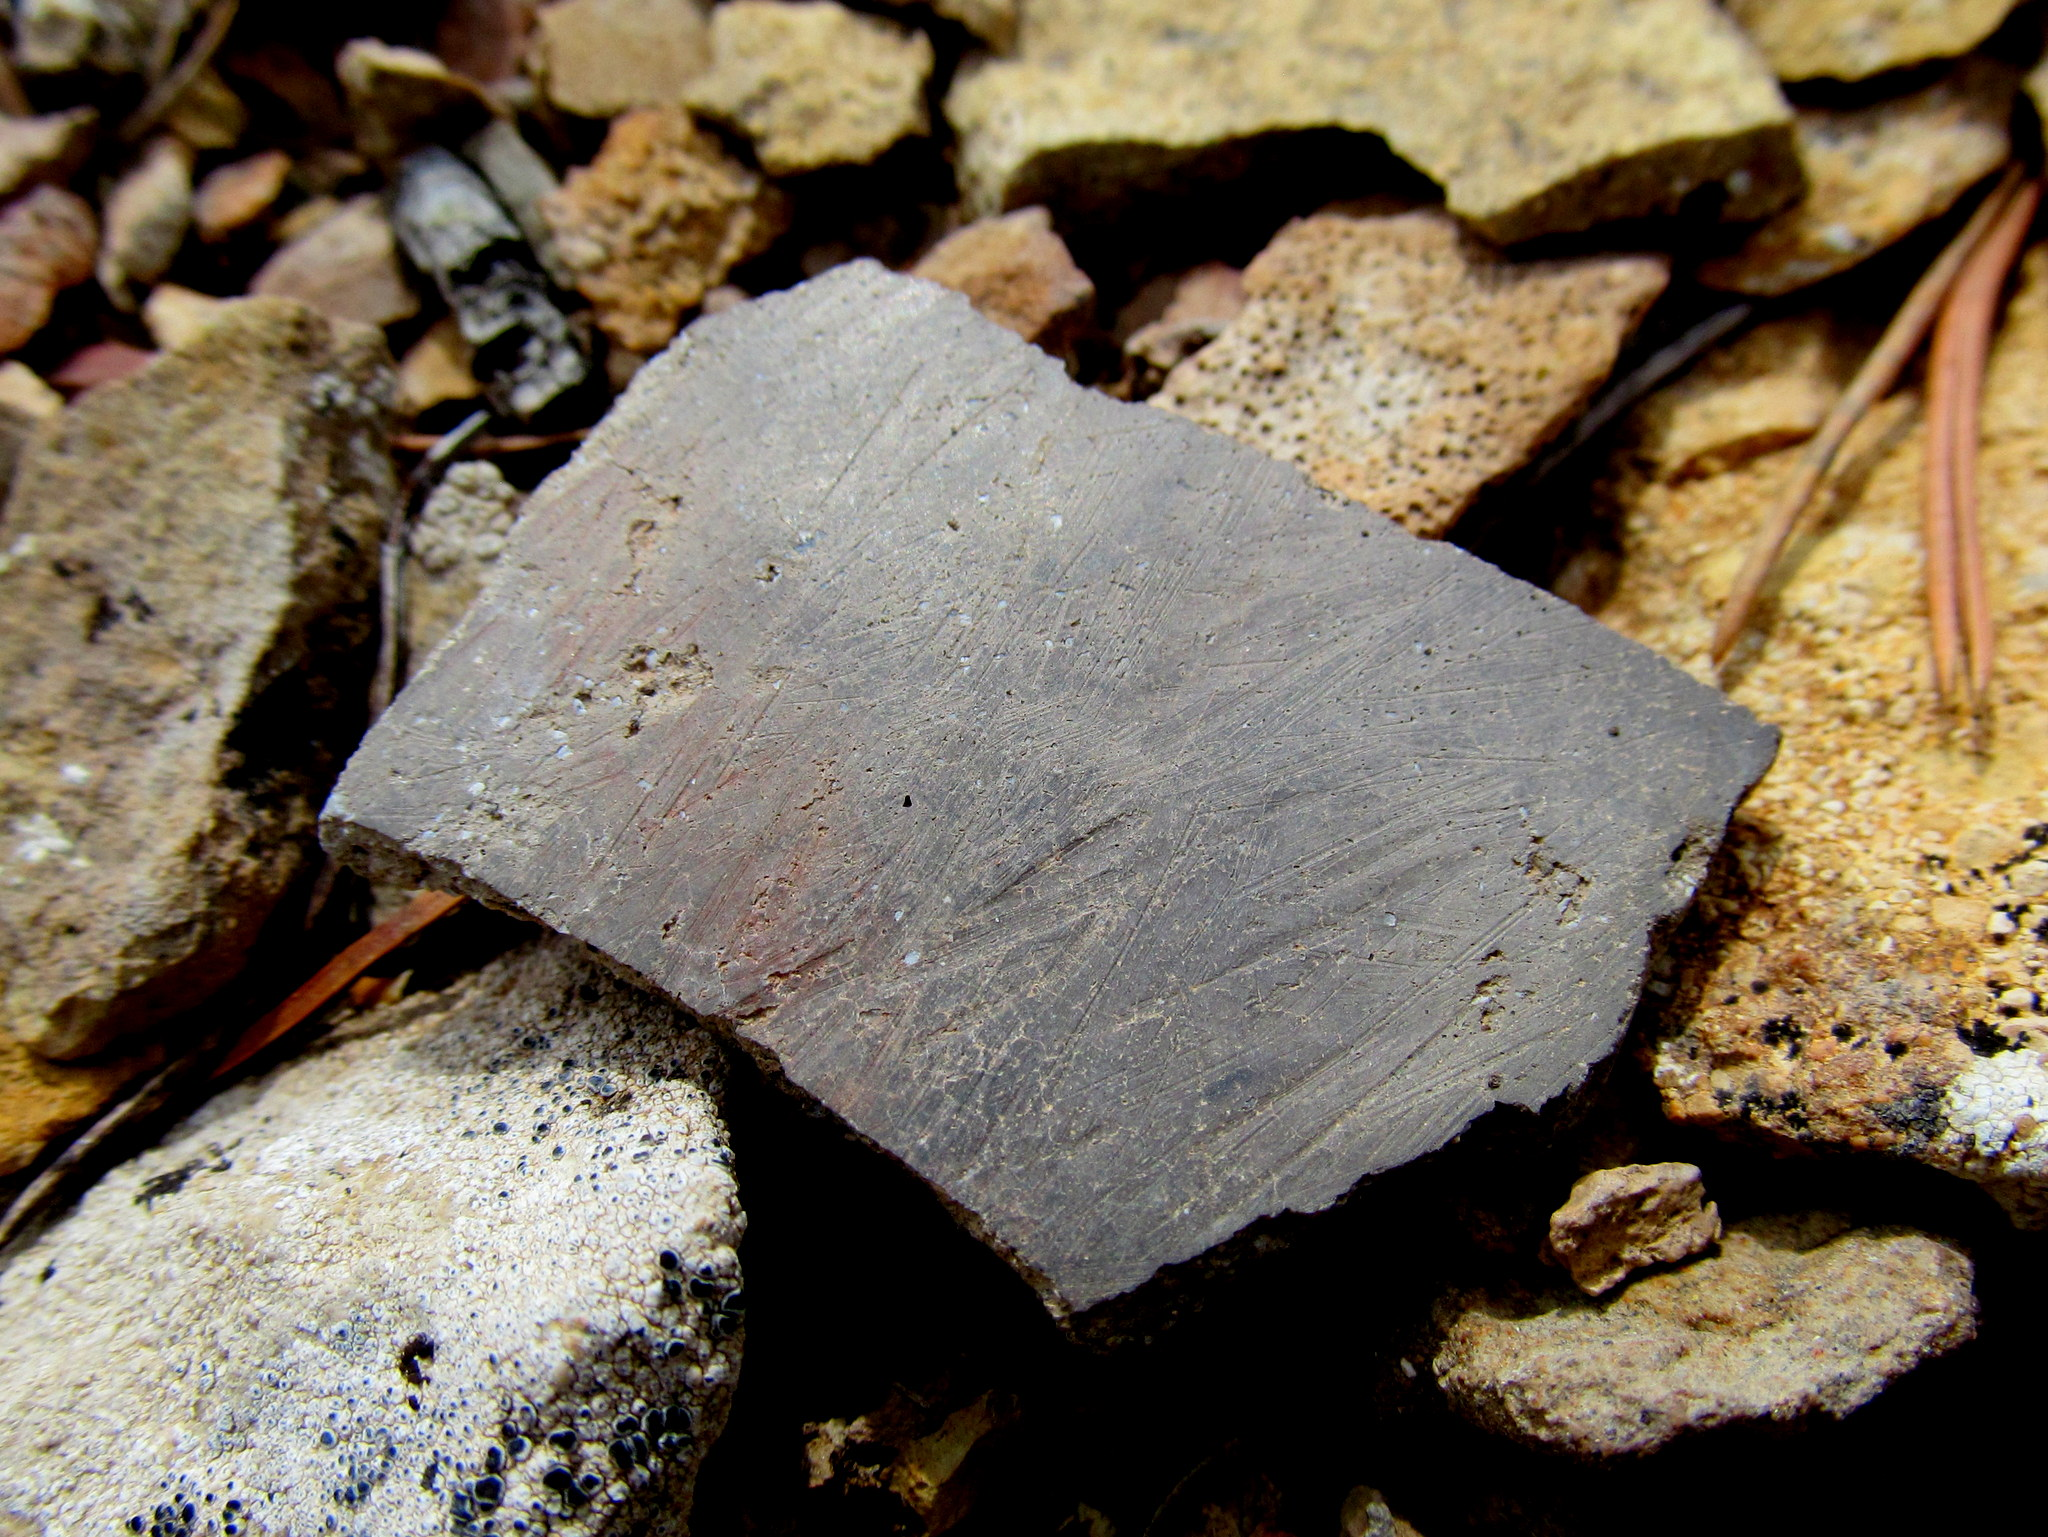 Photo: Texture on a plain gray potsherd